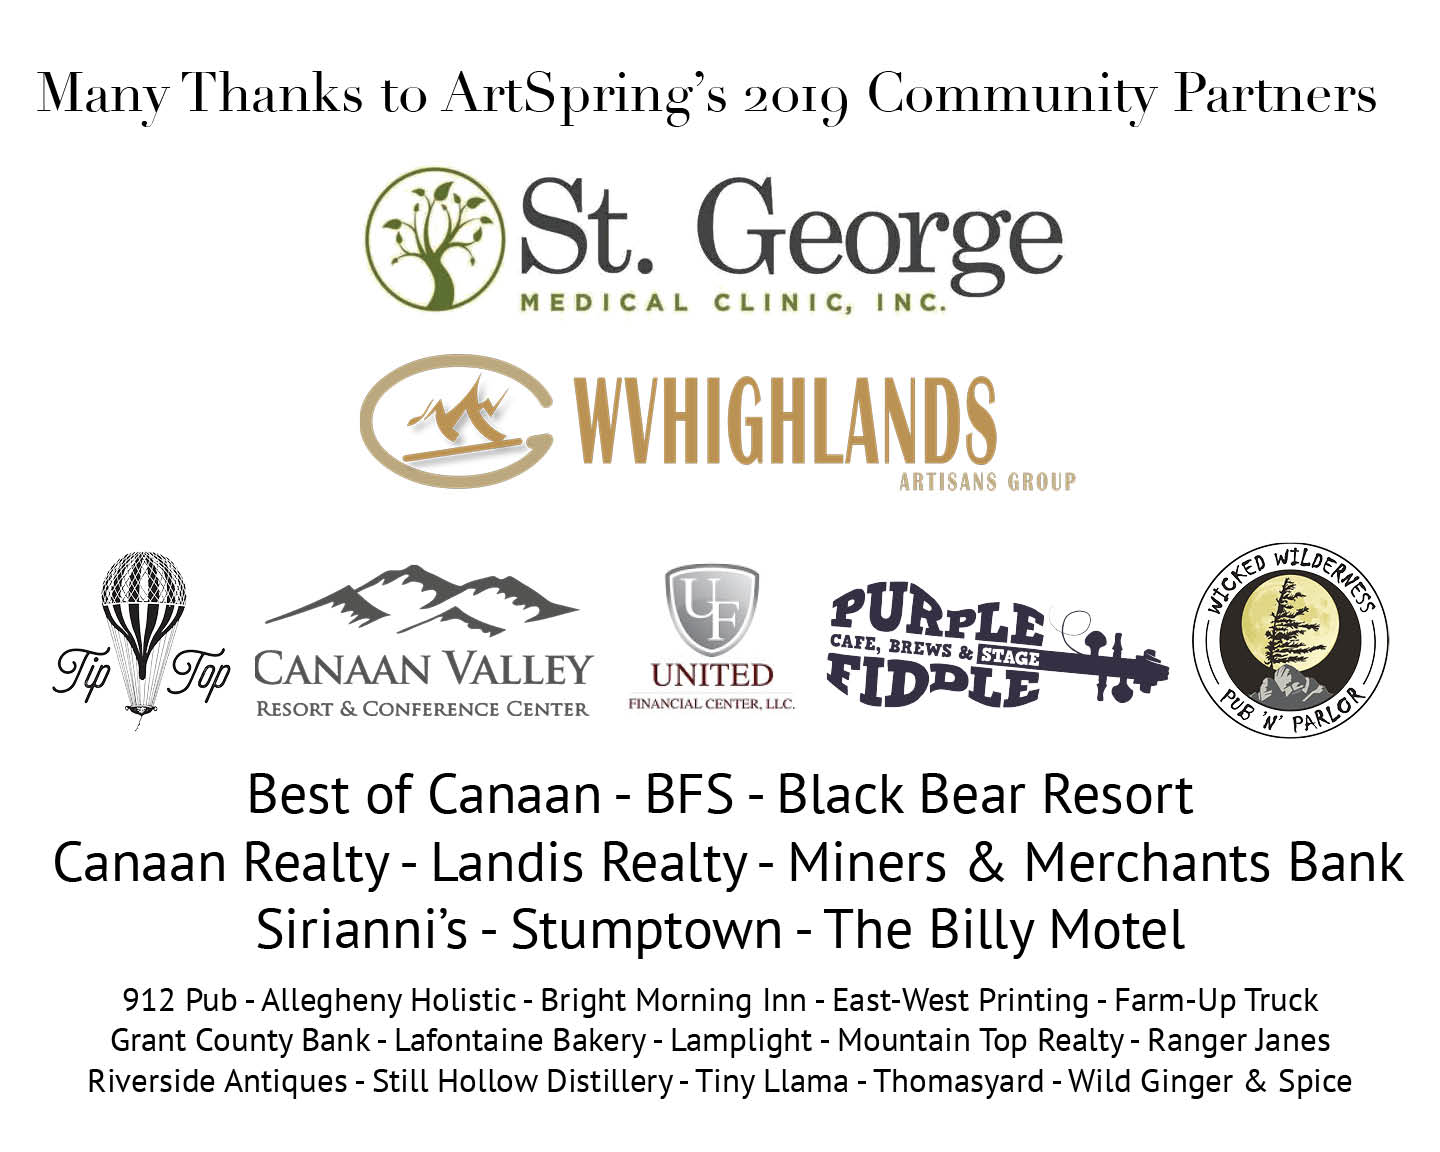 St. George Medical Clinic, WV Highlands Artisans Group, Tip Top, Canaan Valley Resort and Conference Center, United Financial Center, The Purple Fiddle, Wicked Wilderness Pub n' Parlor, Best of Canaan, BFS, Black Bear Resort, Canaan Realty, Landis Realty, Miners & Merchants Bank, Sirianni's, Stumptown, The Billy Motel, 912 Pub, Allegheny Holistic, Bright Morning Inn, East-West Printing, Farm-Up Truck, Grant County Bank, Lafontaine Bakery, Lamplight, Mountain Top Realty, Ranger Jane's, Riverside Antiques, Still Hollow Distillery, Tiny Llama, ThomasYard, Wild Ginger & Spice